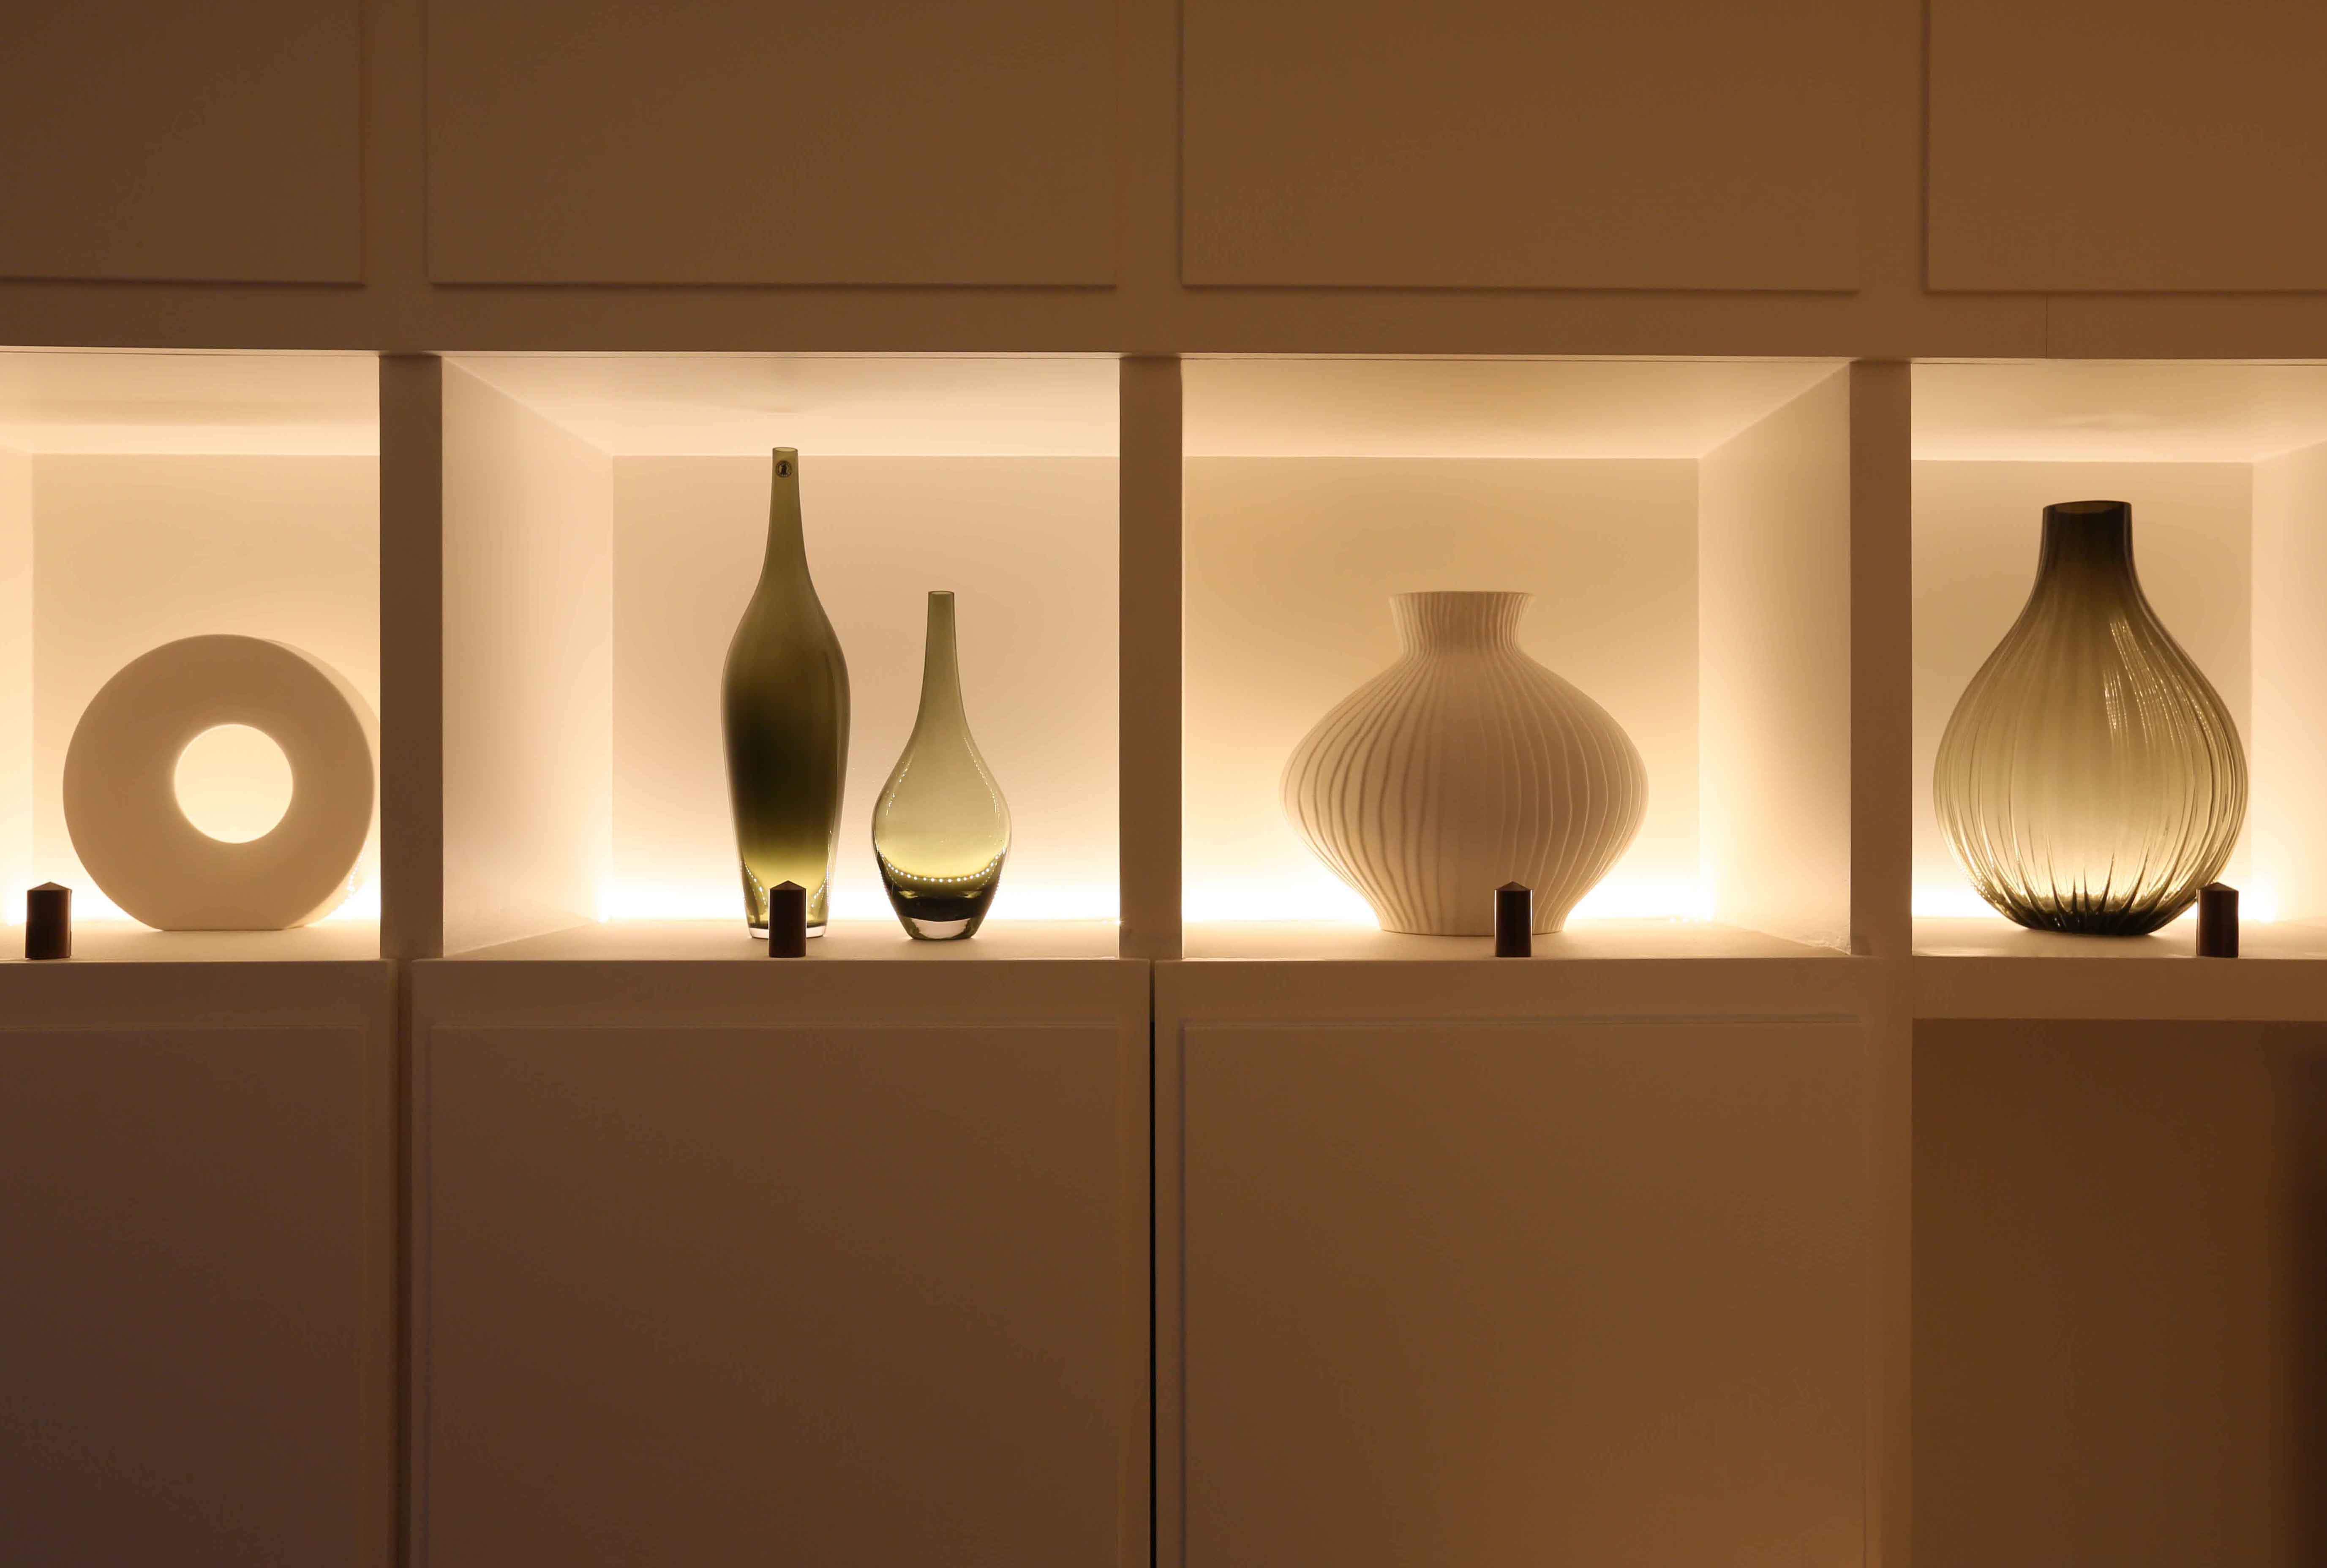 lighting ideas. LED Tape Recesed Inside Joinery Is The Perect Way To Highlight Objects And Create A Soft Lighting Ideas R